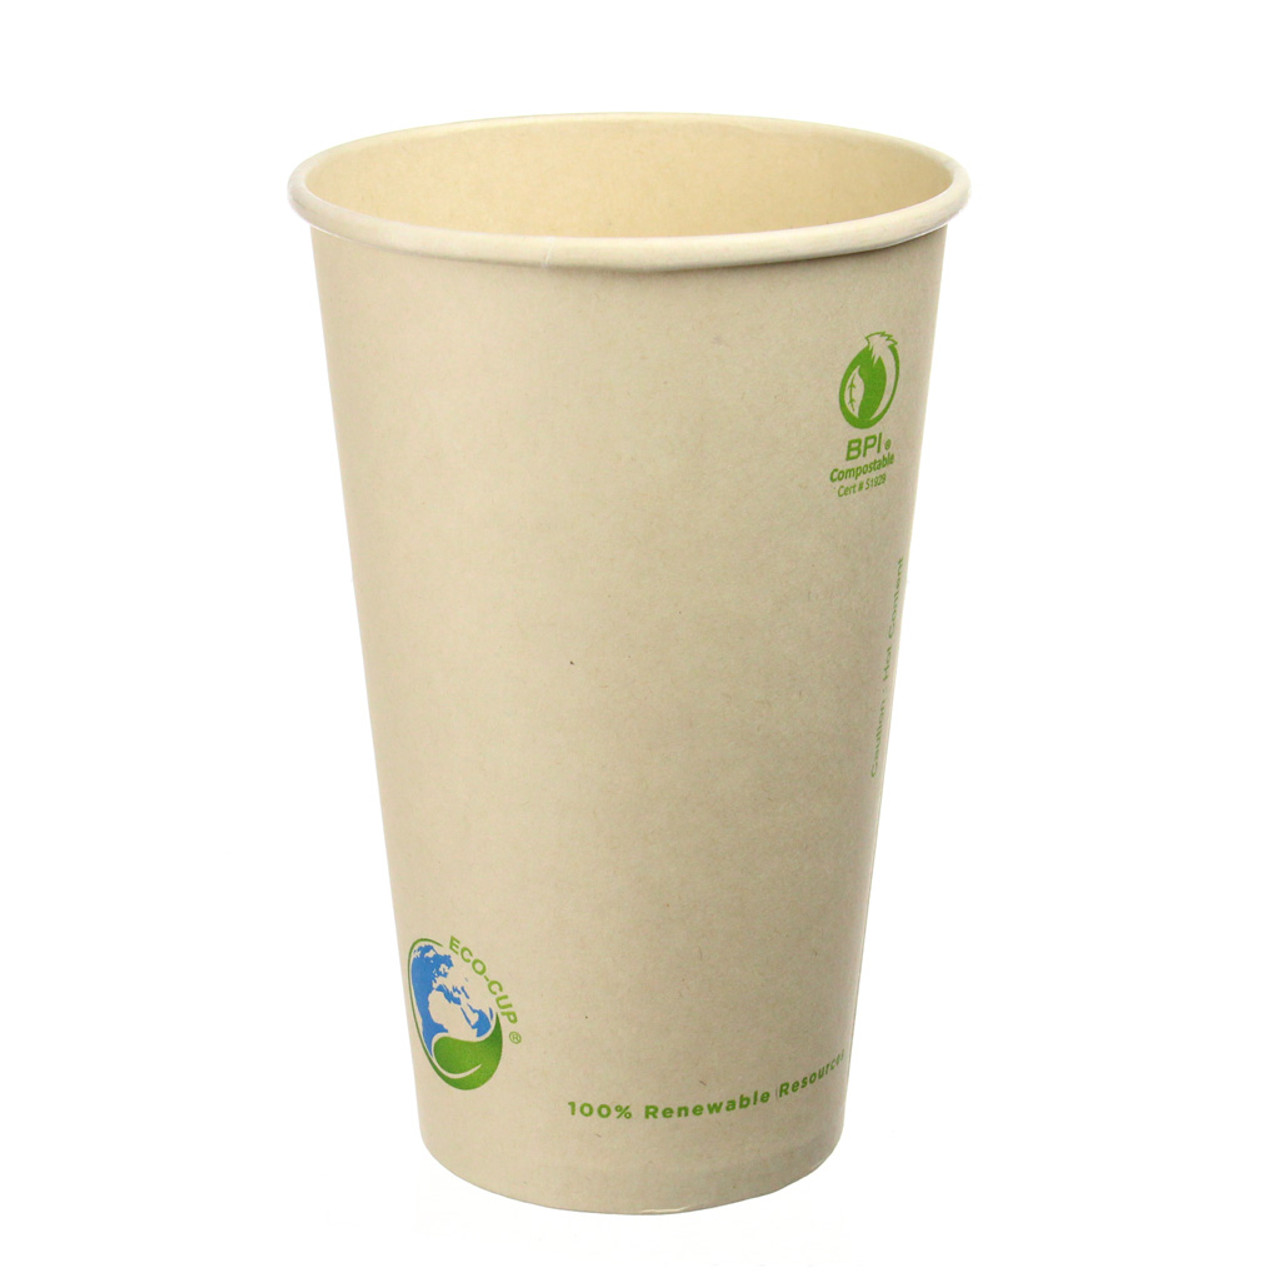 16oz Bamboo Fiber Compostable Coffee Cups